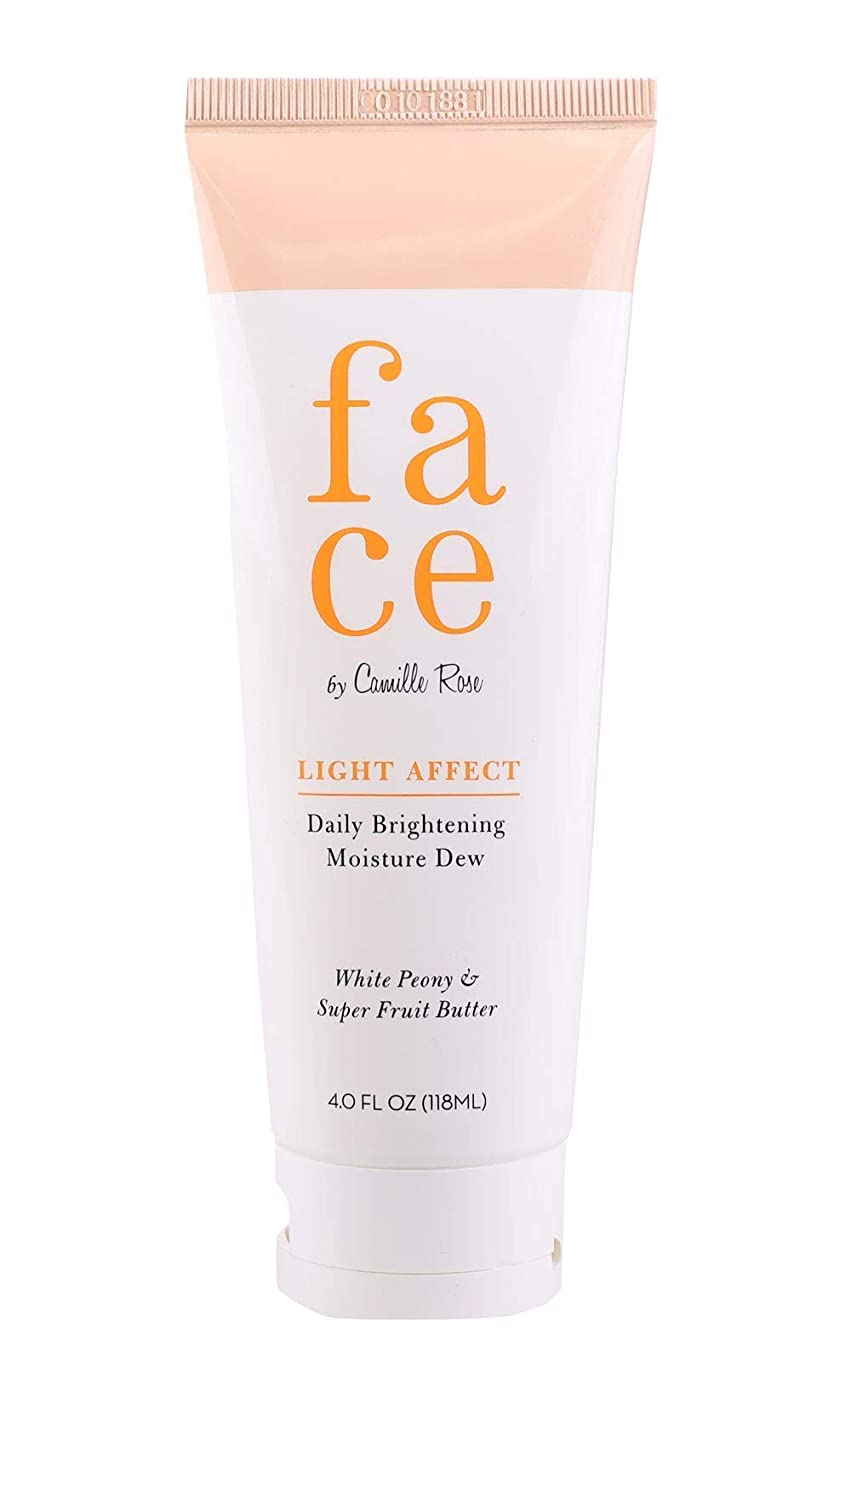 Camille Rose Light Affect Daily Moisture Tampa Mall Brightening Moistur Industry No. 1 Dew